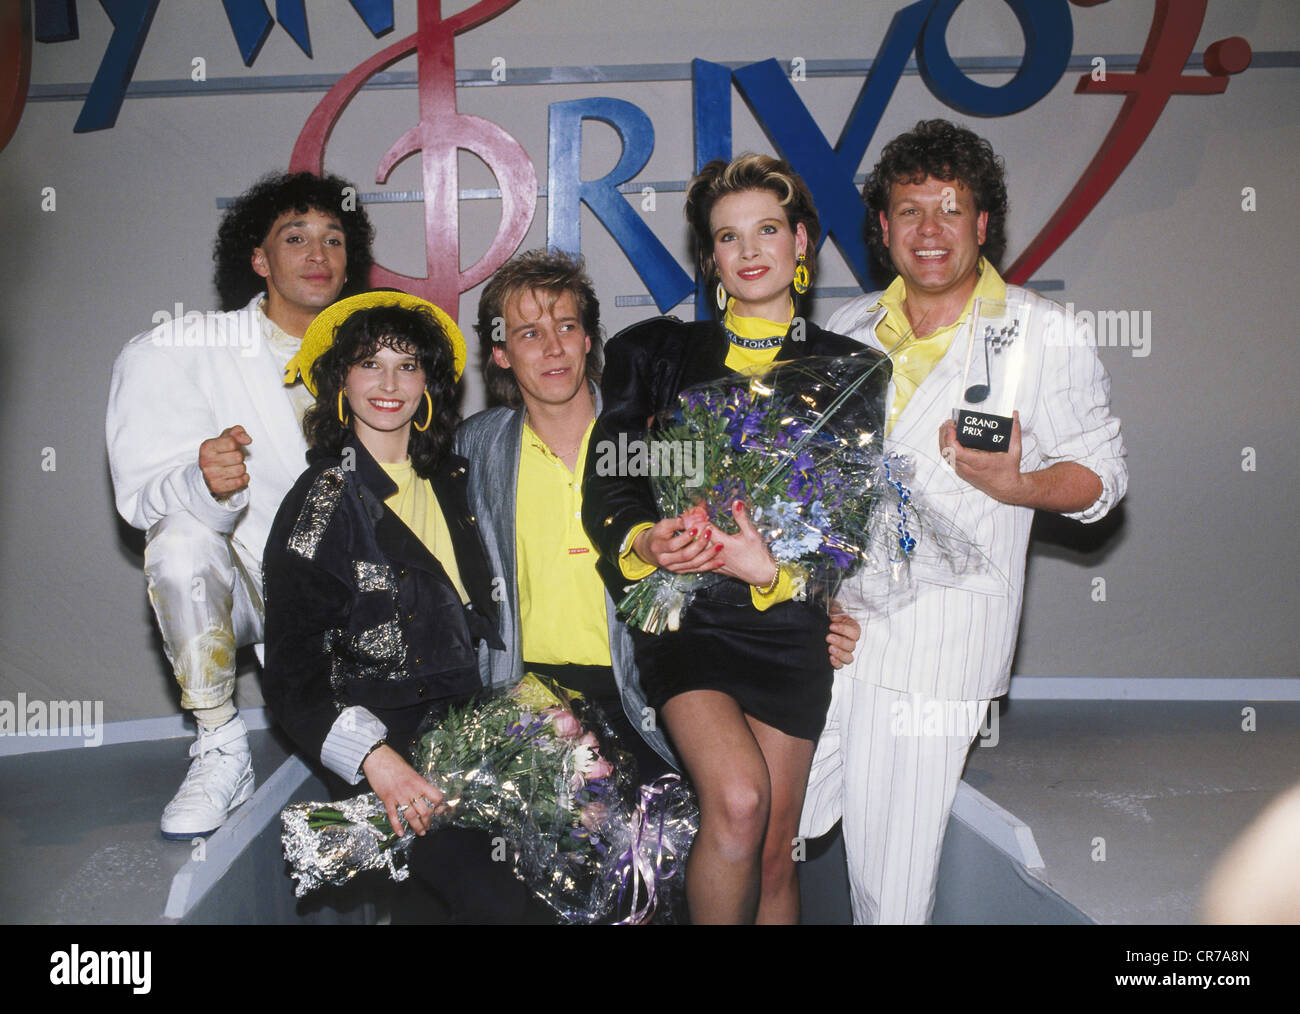 Wind, German Schlager band, formed in 1985, group picture, as winners of the German preliminary final for the Eurovision - Stock Image